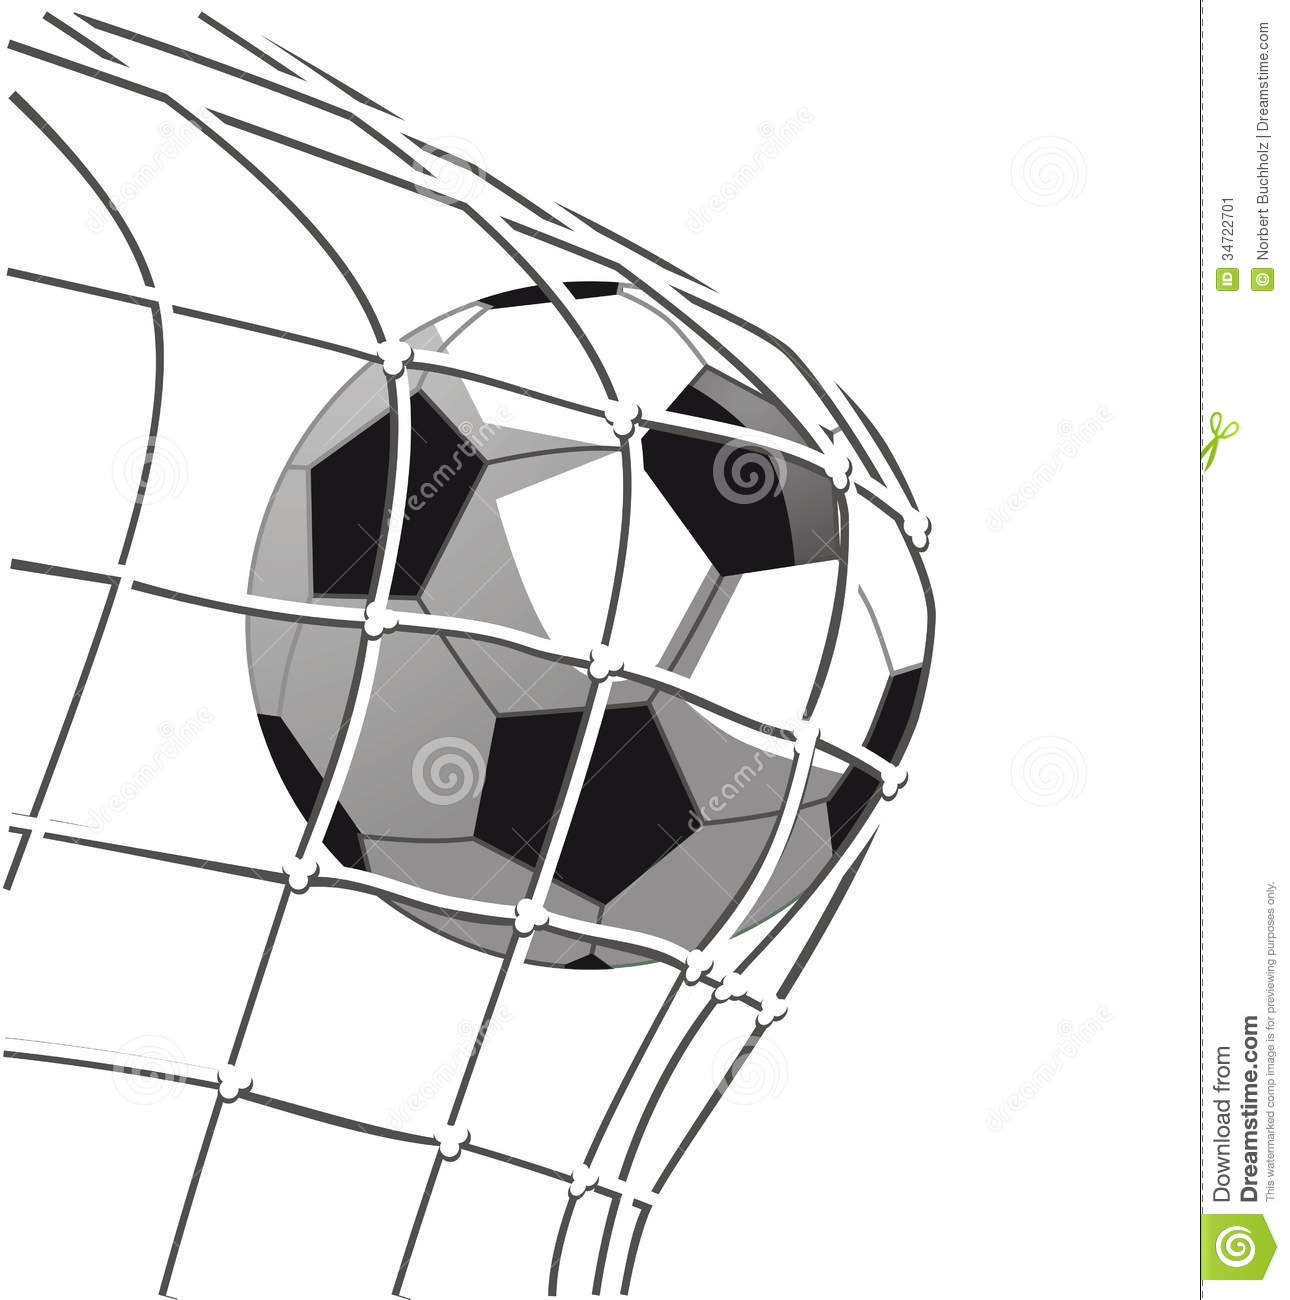 soccer-goal-clipart-soccer-ball-goal-illustration-hitting-net-34722701 ...